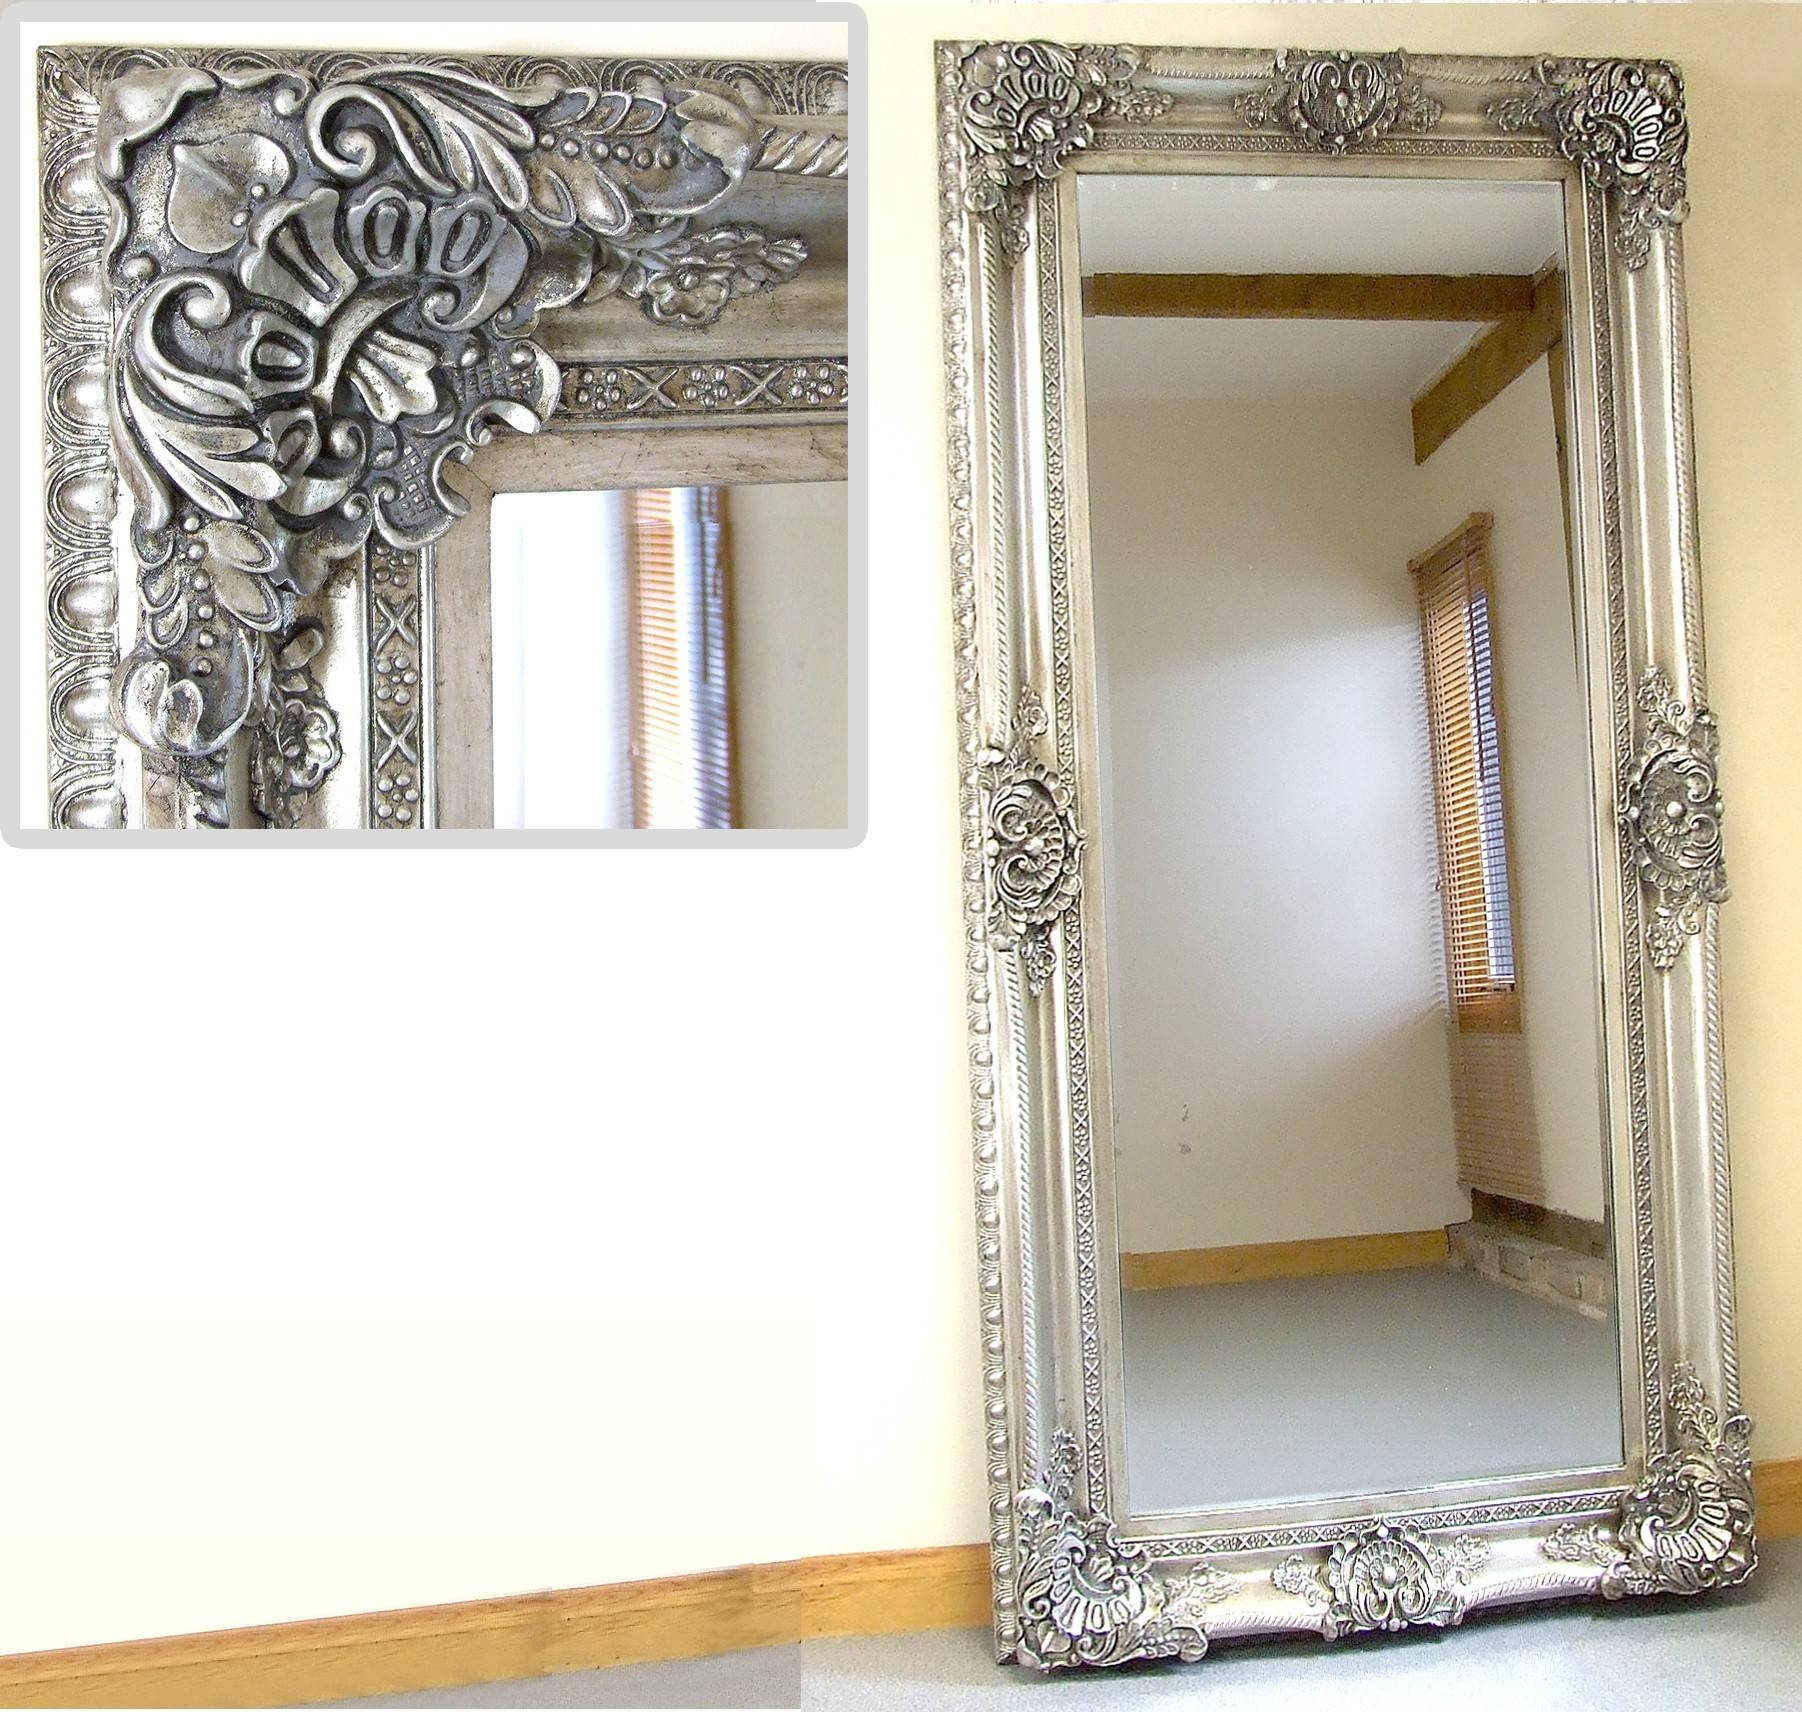 Full Length Silver Mirror 40 Unique Decoration And Ornate Full regarding Ornate Full Length Wall Mirrors (Image 11 of 25)